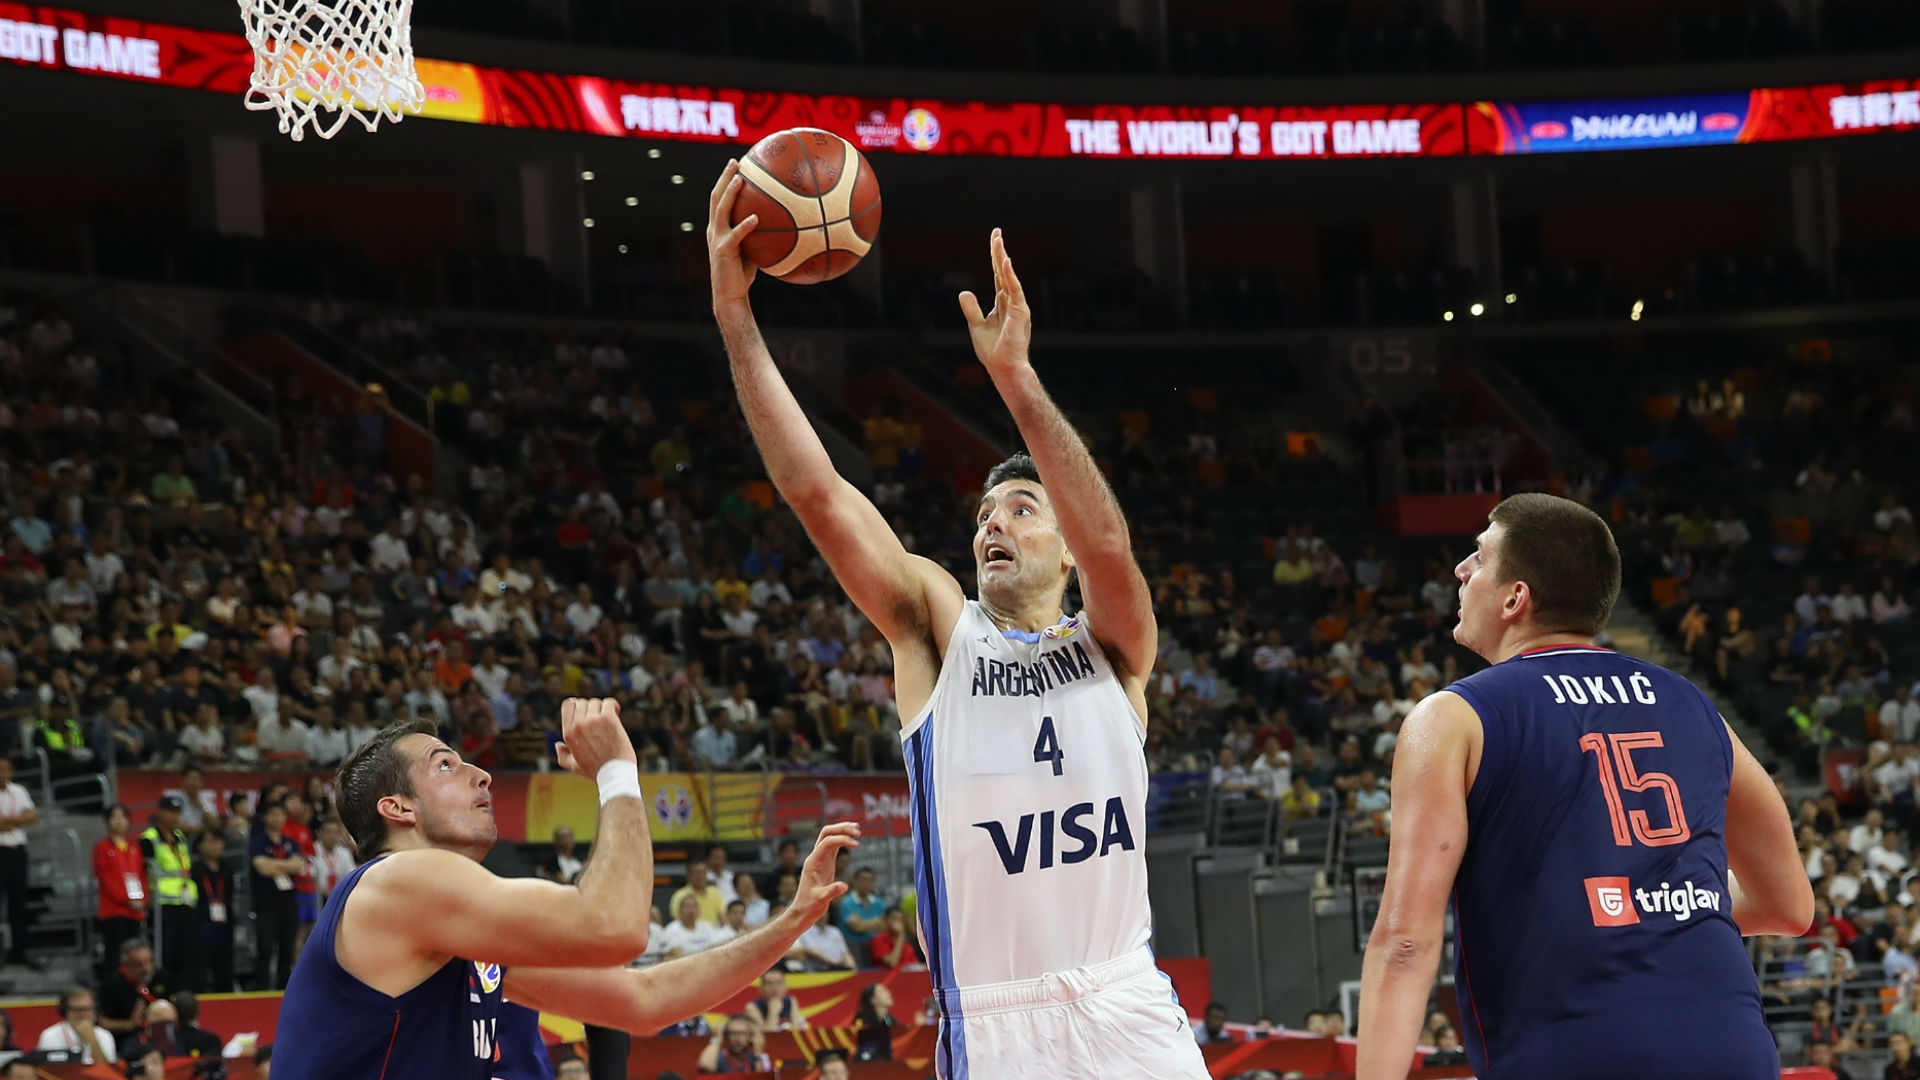 Luis Scola goes to the hoop in the FIBA World Cup matchup between Argentina and Serbia.